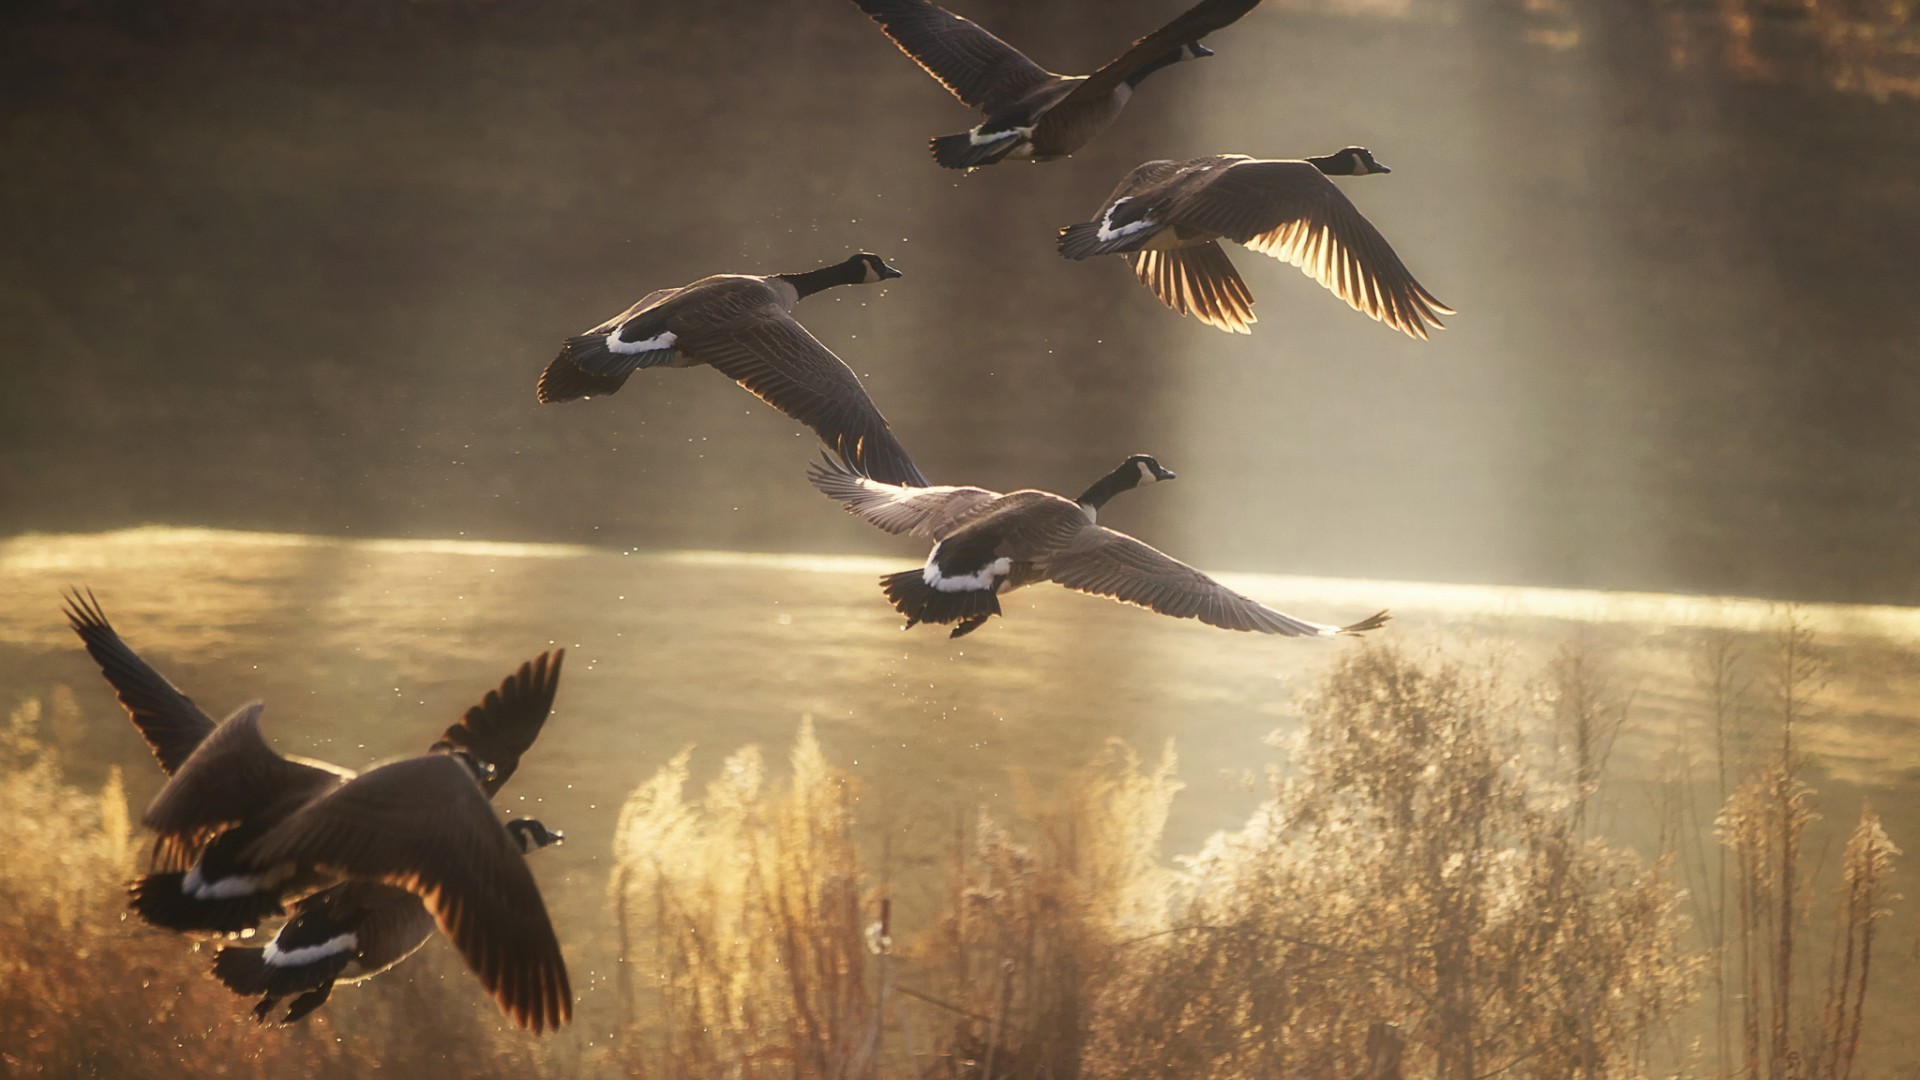 animals bird wildlife goose water seagulls outdoors nature waterfowl swimming duck flight action fly two